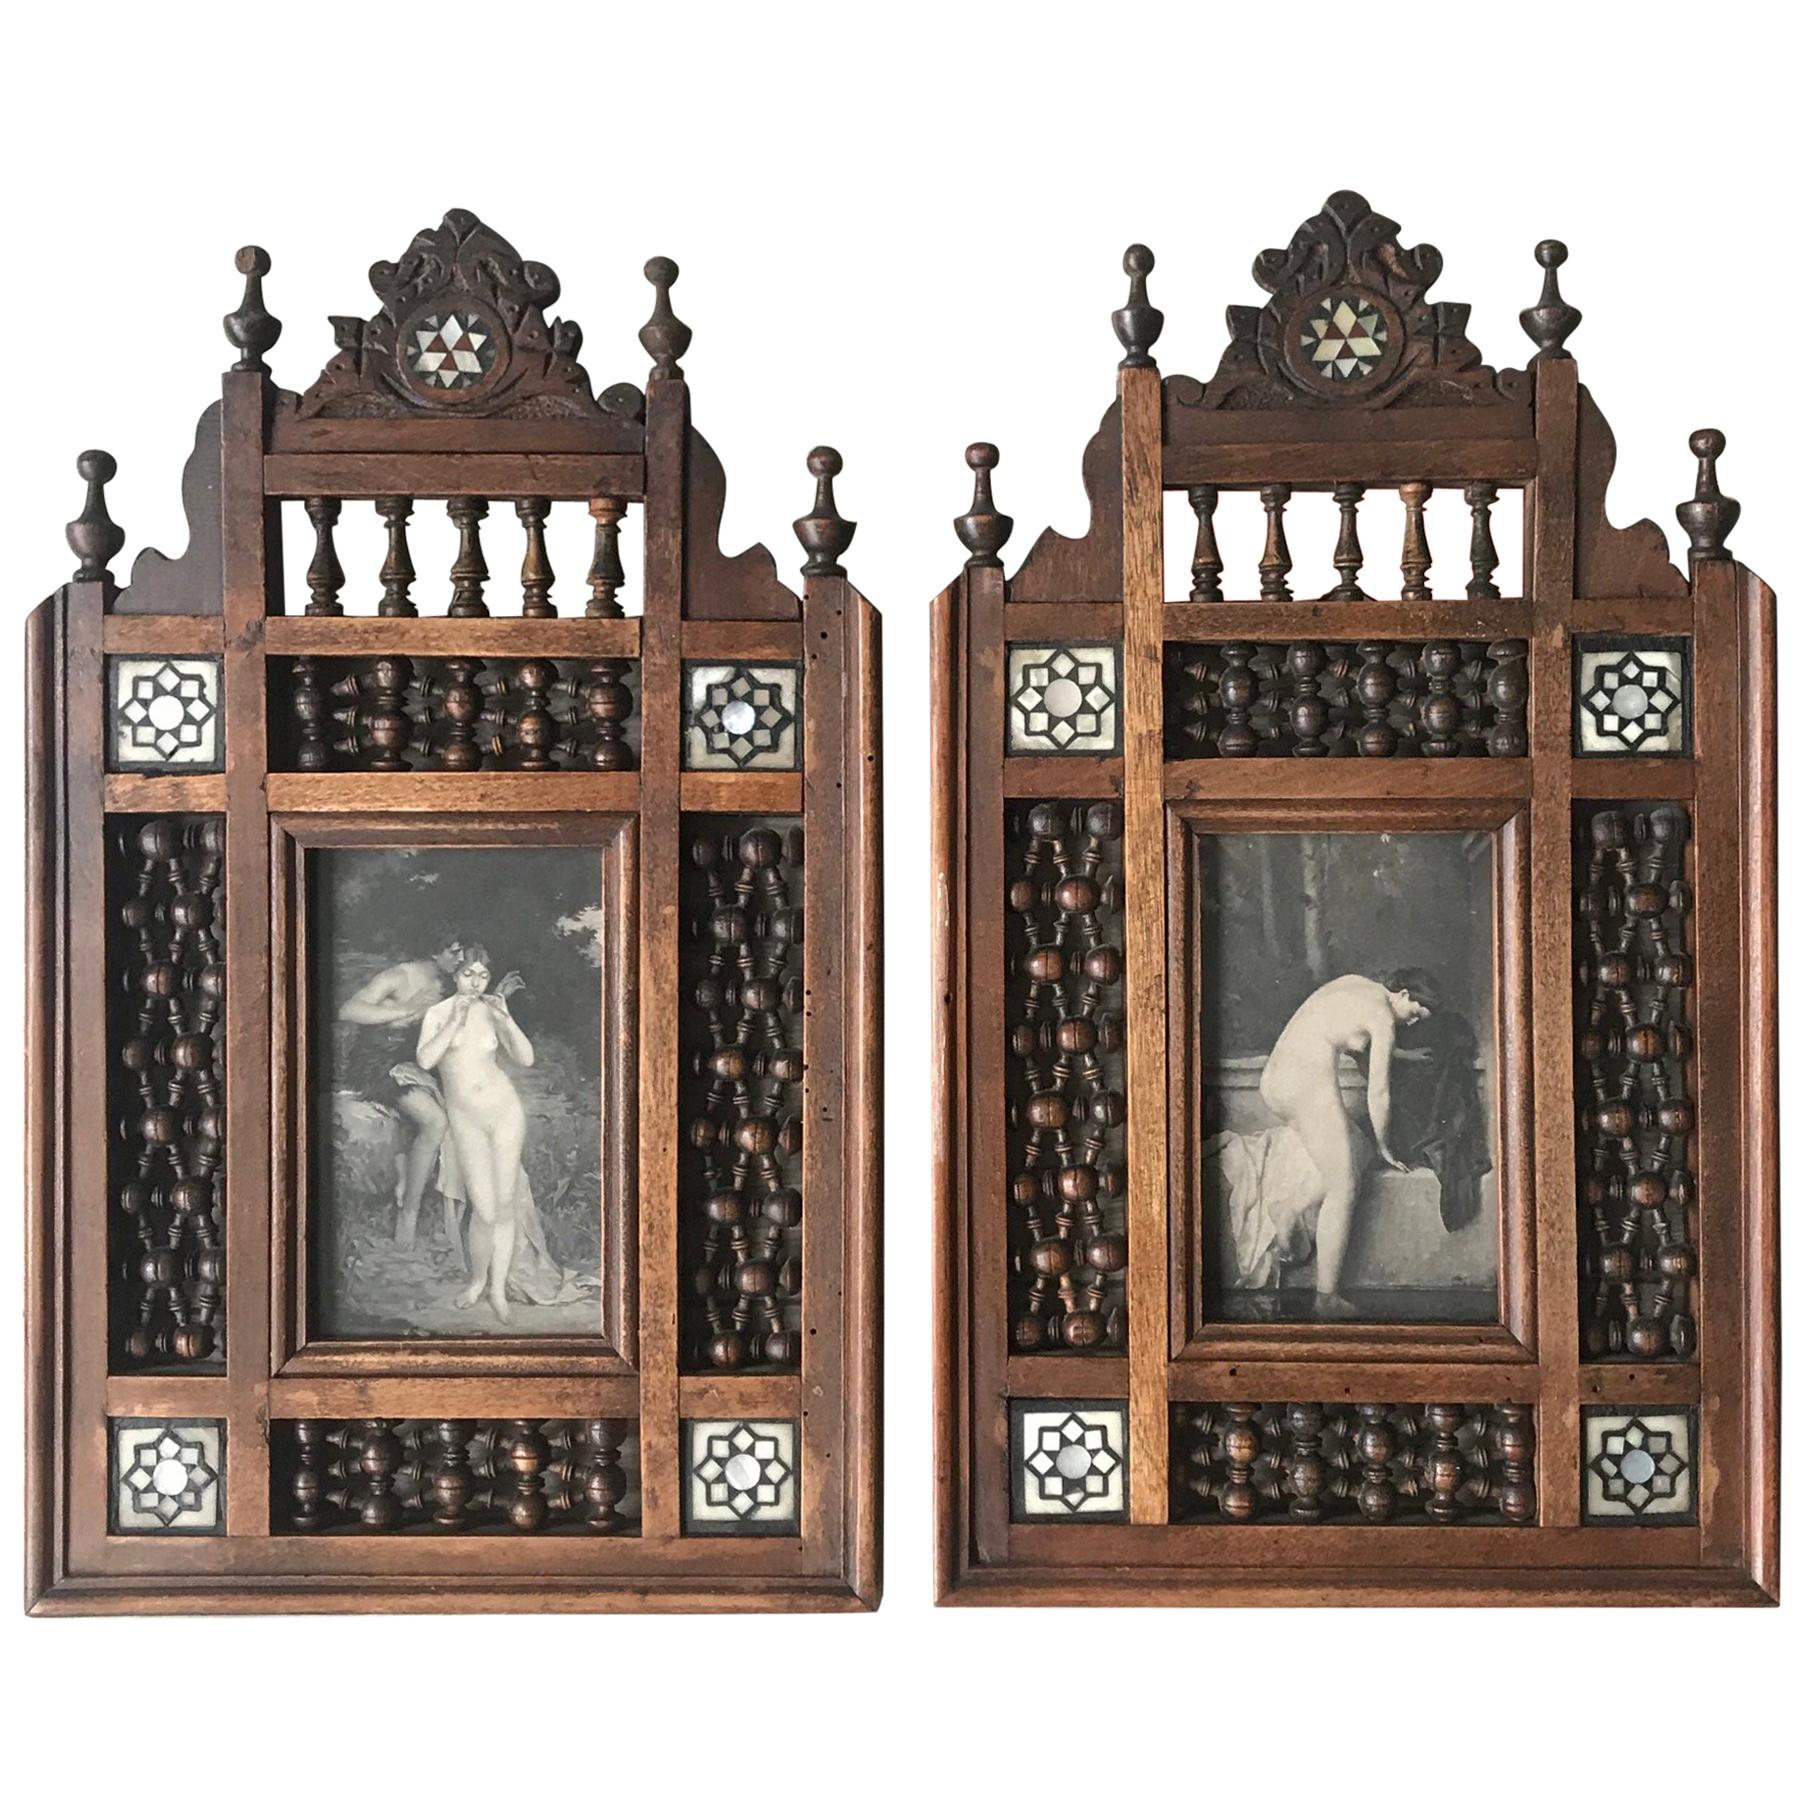 Rare c.1900 Handcrafted Pair of Arabic Motifs Parelmoer Inlaid Picture Frames